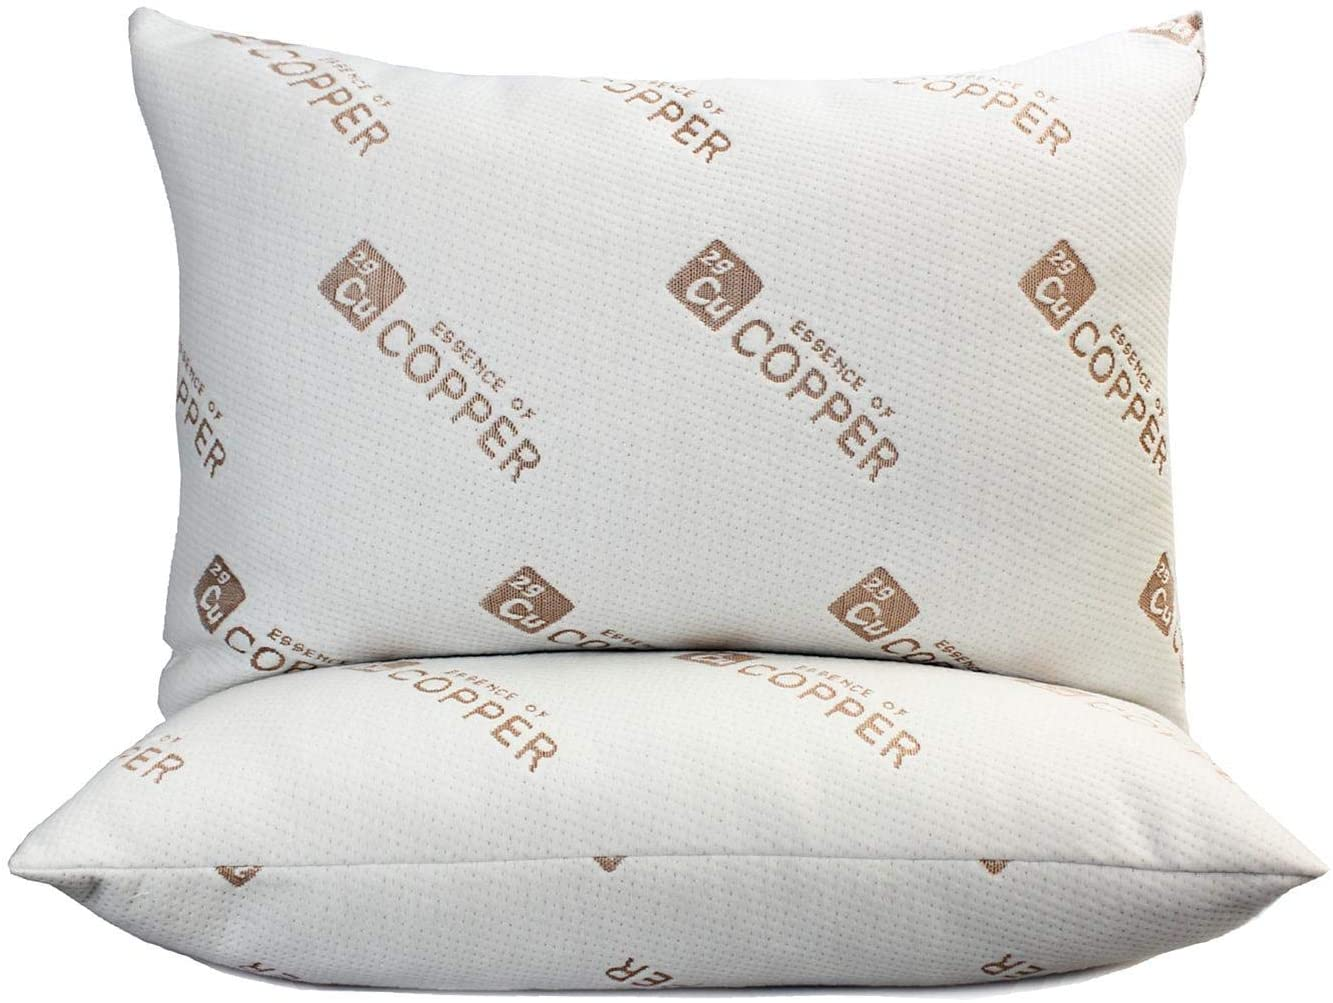 essence of copper down alternative pillow jumbo size 20 x 28 2 pack queen